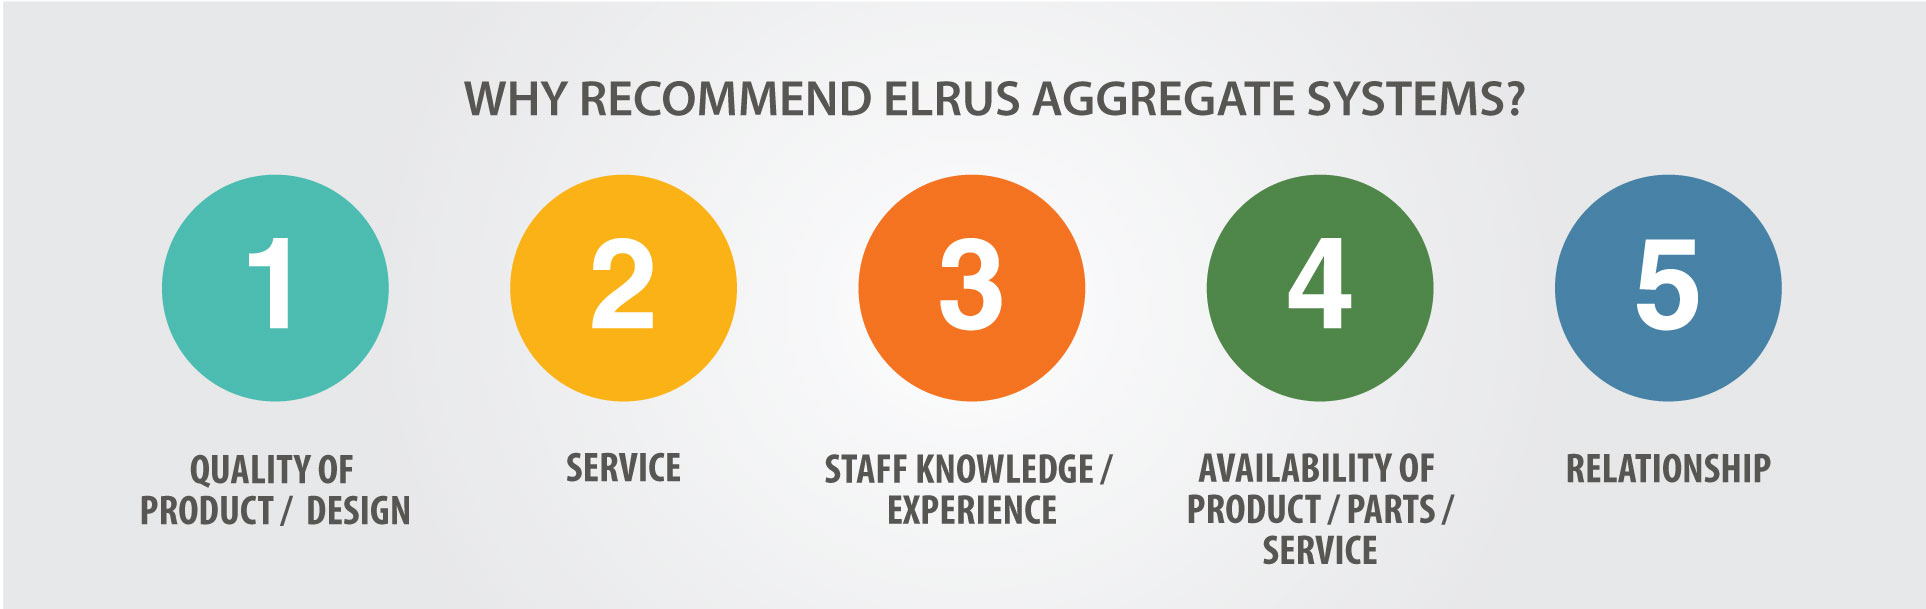 elrus_main_why_recommend